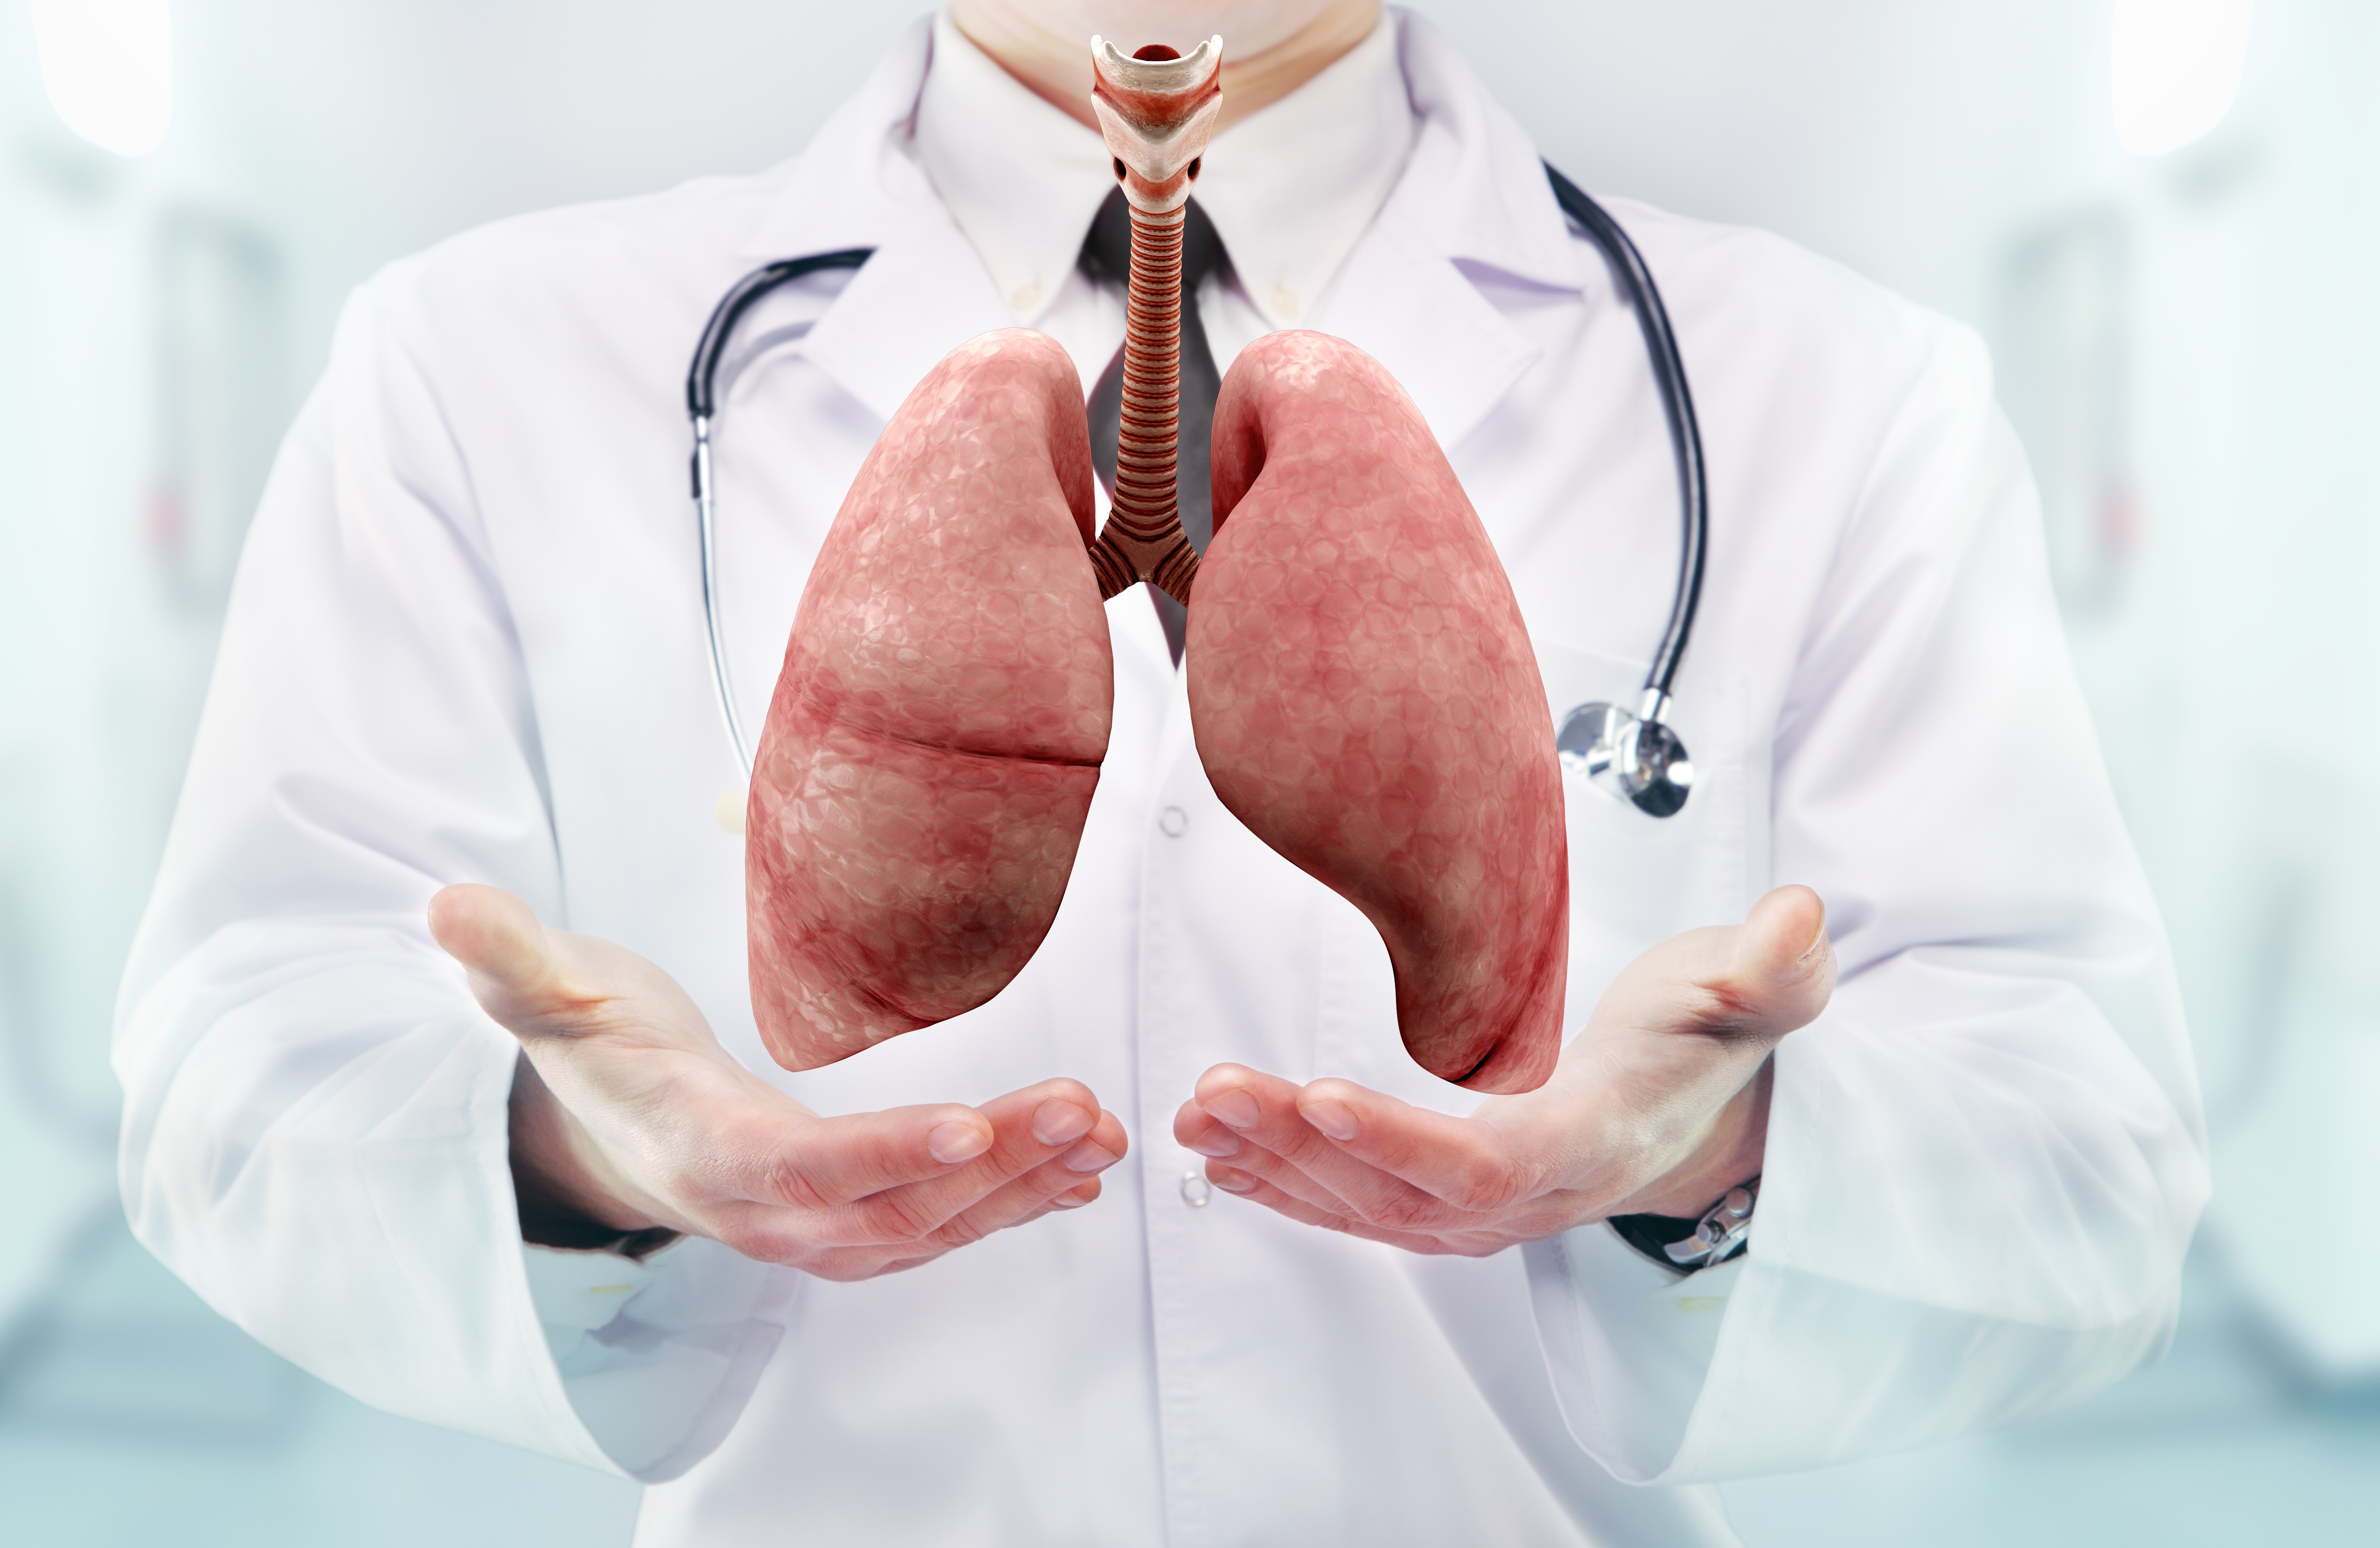 COPD and Heart Failure: What are the Symptoms and how are They Related?